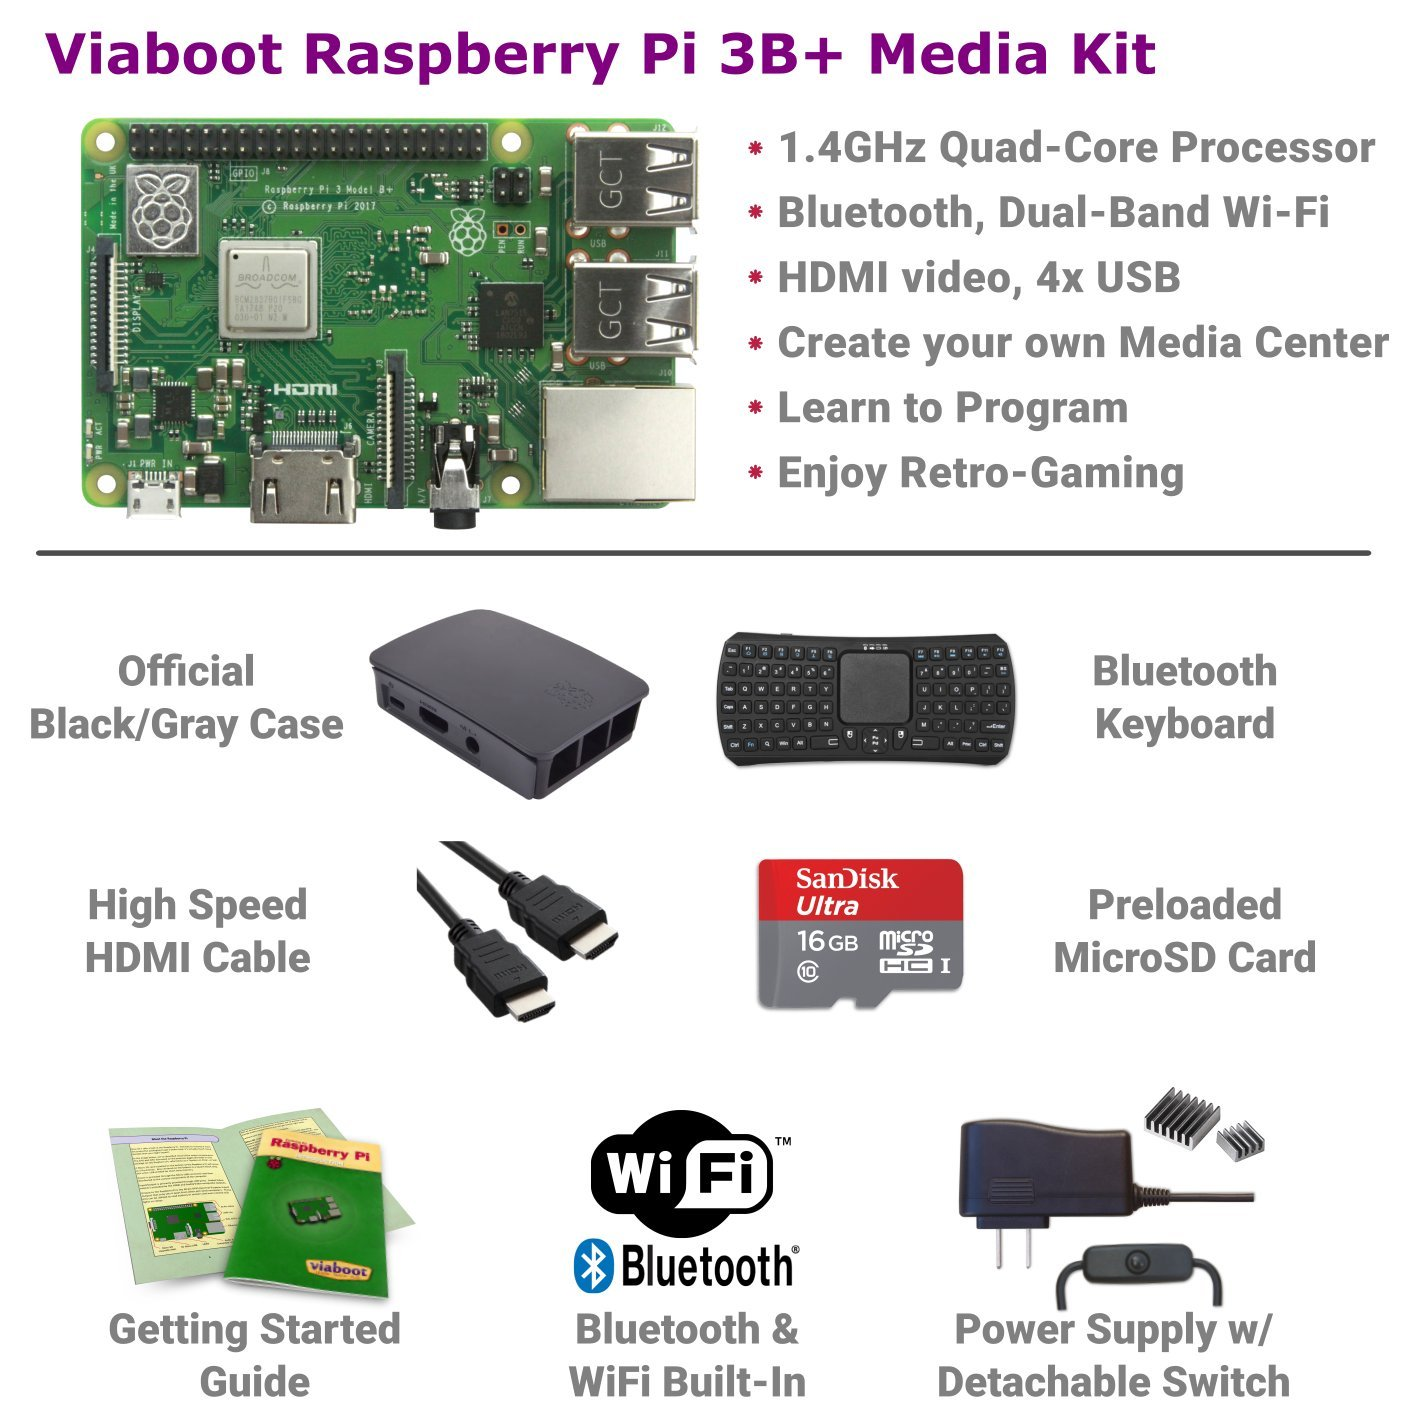 Viaboot Raspberry Pi 3 B+ Deluxe Kit — Official 16GB MicroSD Card, Official Rasbperry Pi Foundation Black/Gray Case, Bluetooth Keyboard Edition by Viaboot (Image #2)